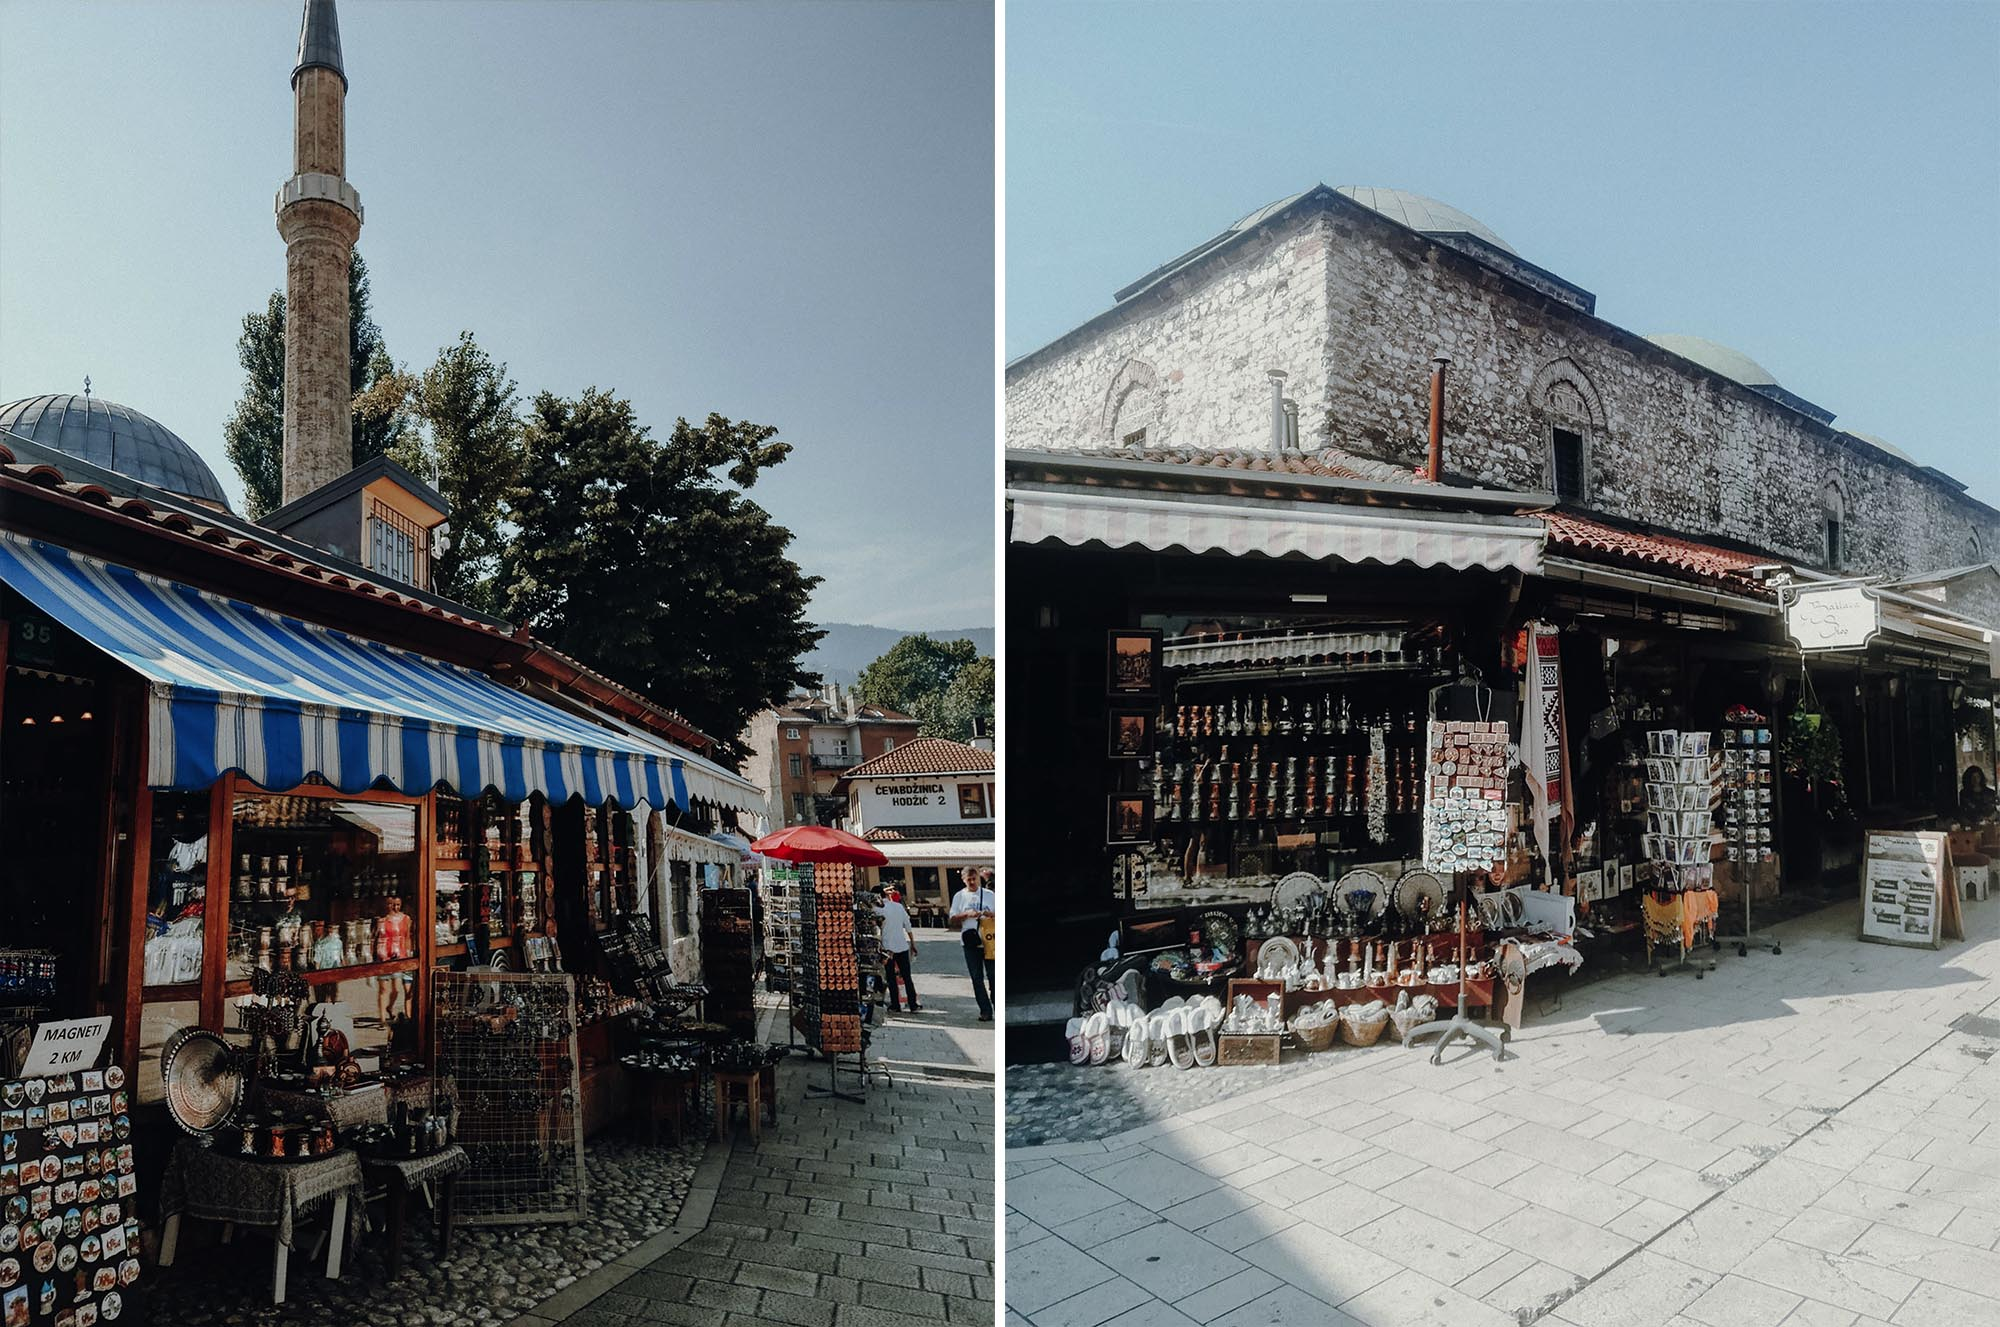 Sarajevo Basar. Roadtrip durch Bosnien Montenegro Kroatien. Am Balkan vegan essen, reisen, fahren, packen. Dogdays of Summer vegan vintage Blog